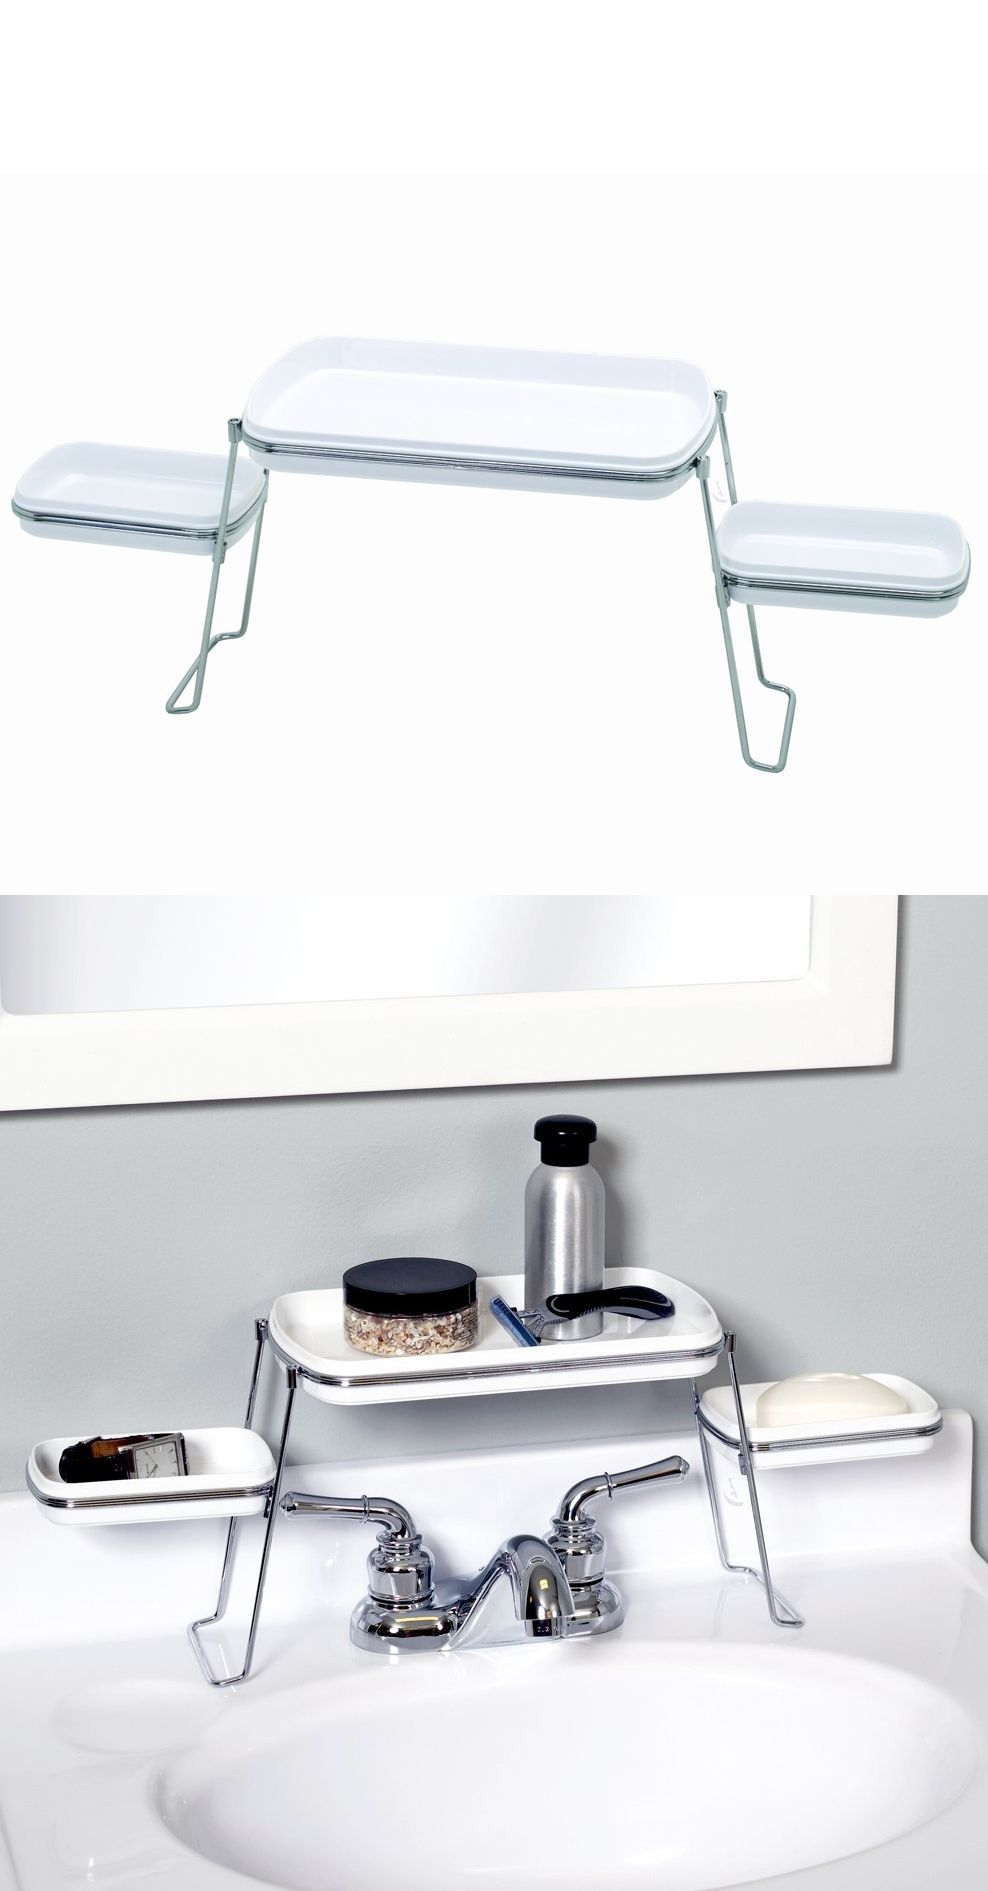 Kitchen Sink Shelf Organizer Small Spaces Over The Faucet Shelf Clever Organizer